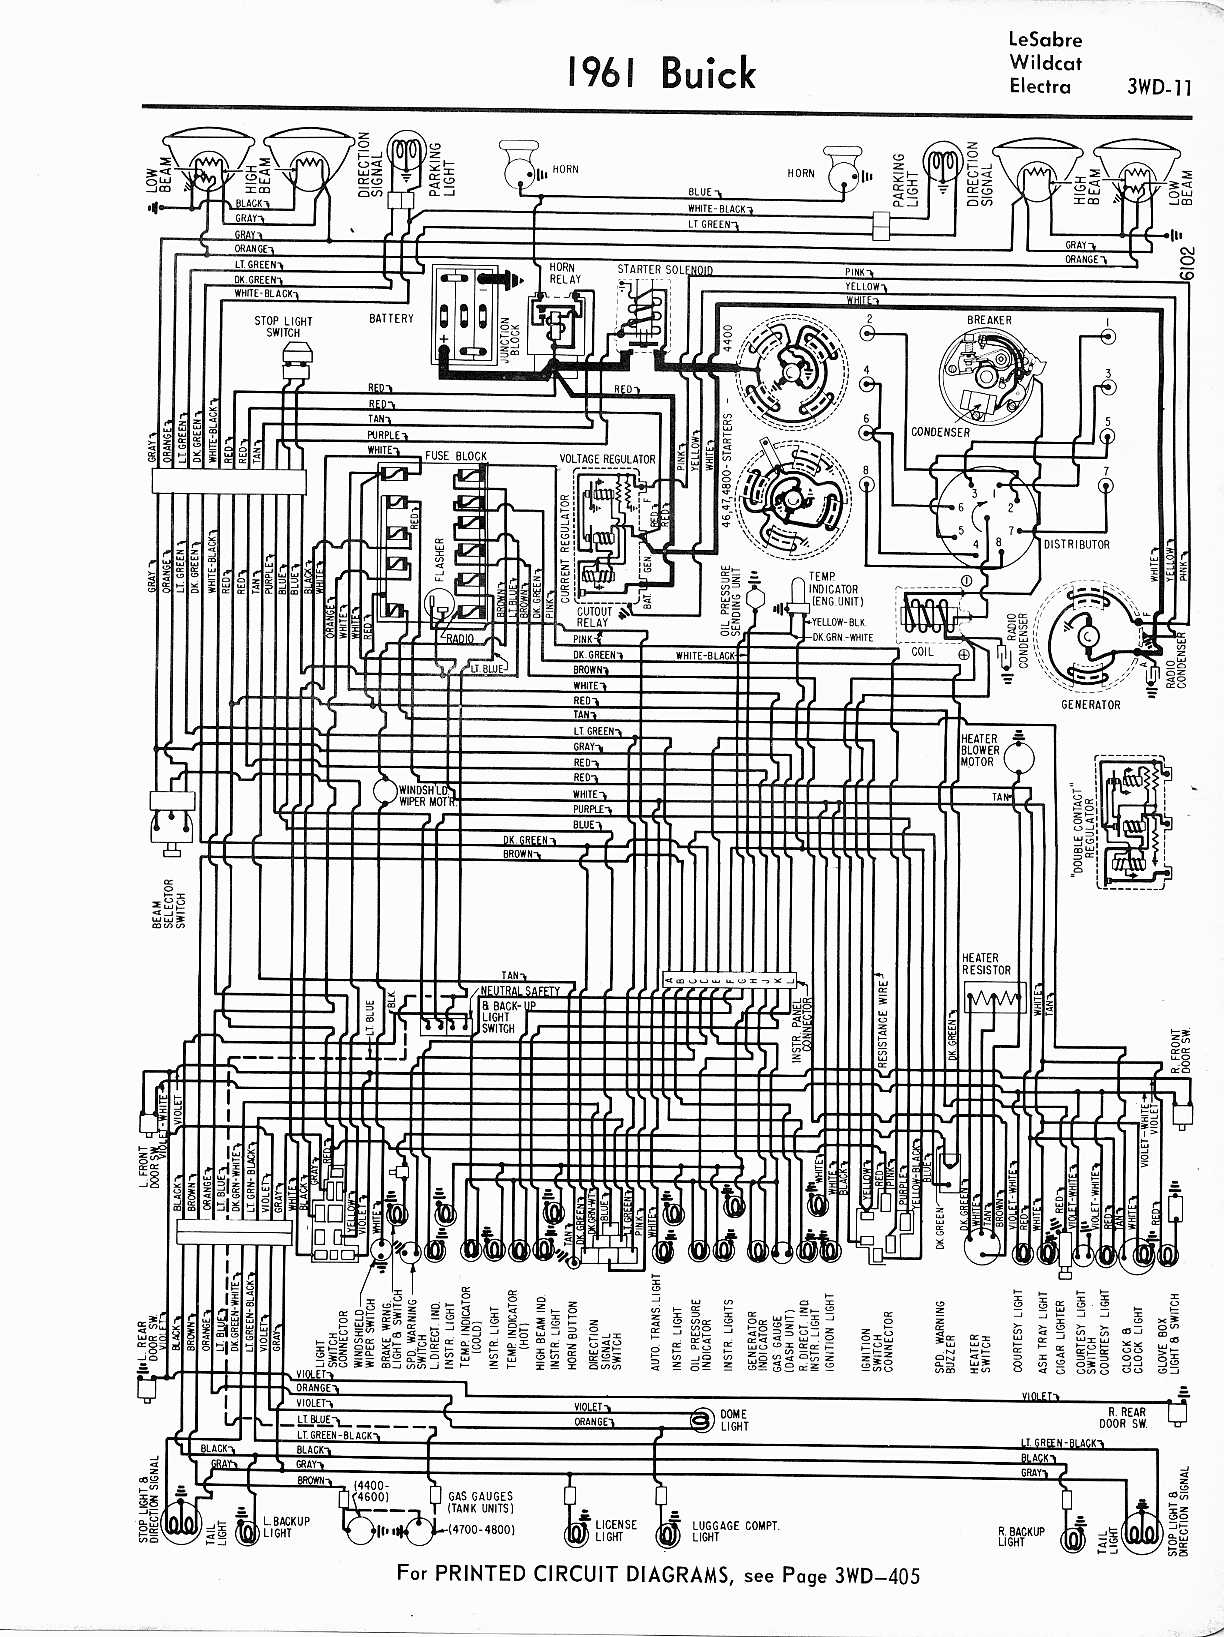 1997 Buick Century Headlight Wiring Diagram Reinvent Your 97 Jeep Wrangler Fuse Box Wire Diagrams 1957 1965 Rh Oldcarmanualproject Com Lesabre Parts Cherokee